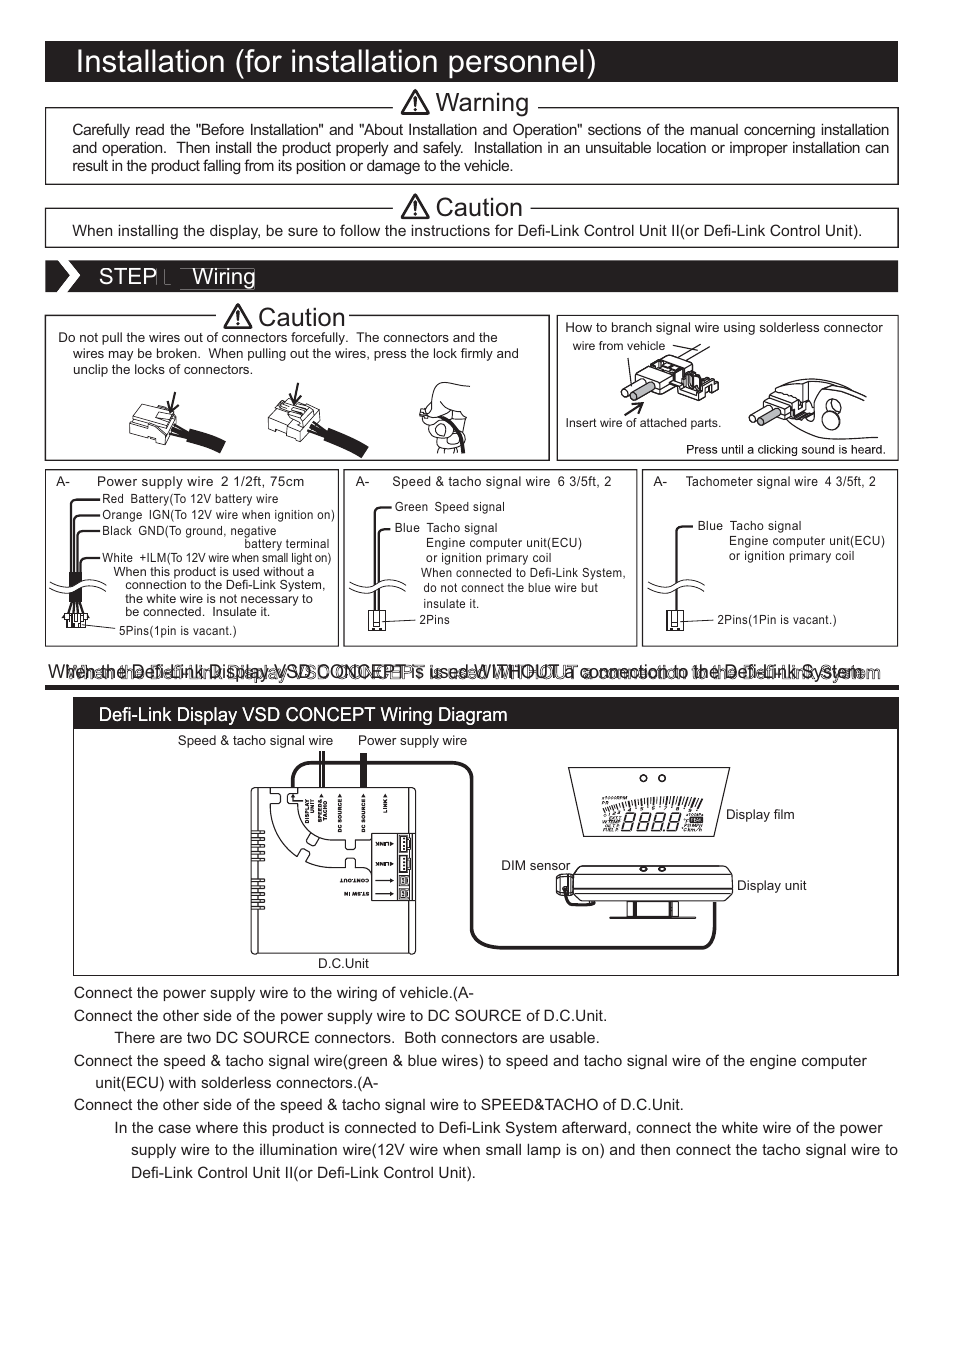 Defi Control Unit Wiring Diagram Library Clarion Db265mp Car Audio Installation For Personnel Warning Caution Link Vsd Concept User